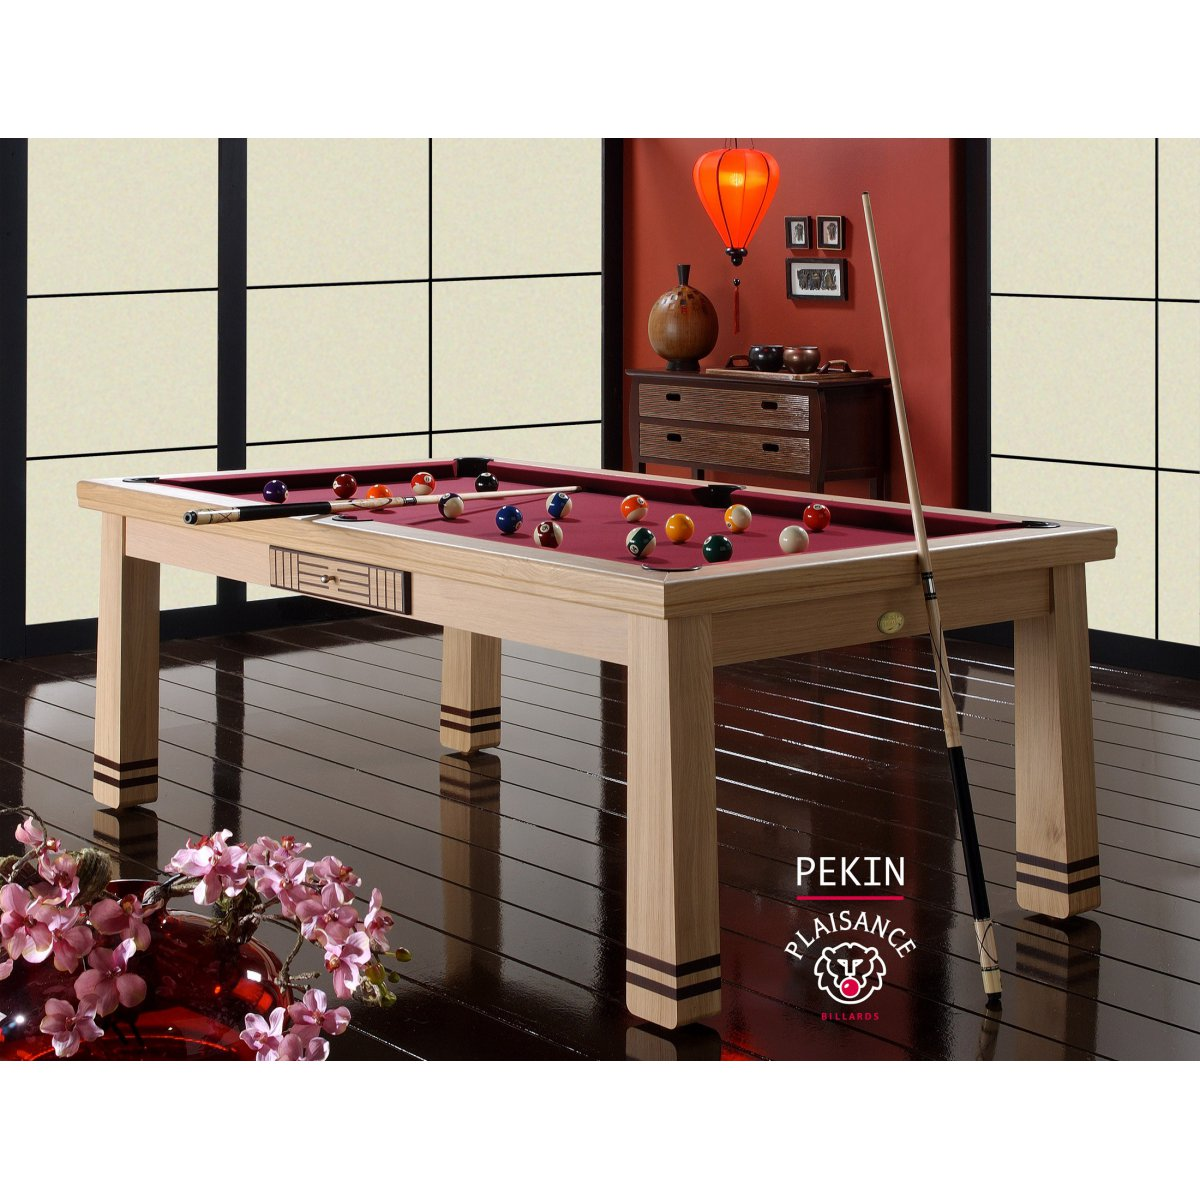 billard table manger pekin - Billard Et Table A Manger